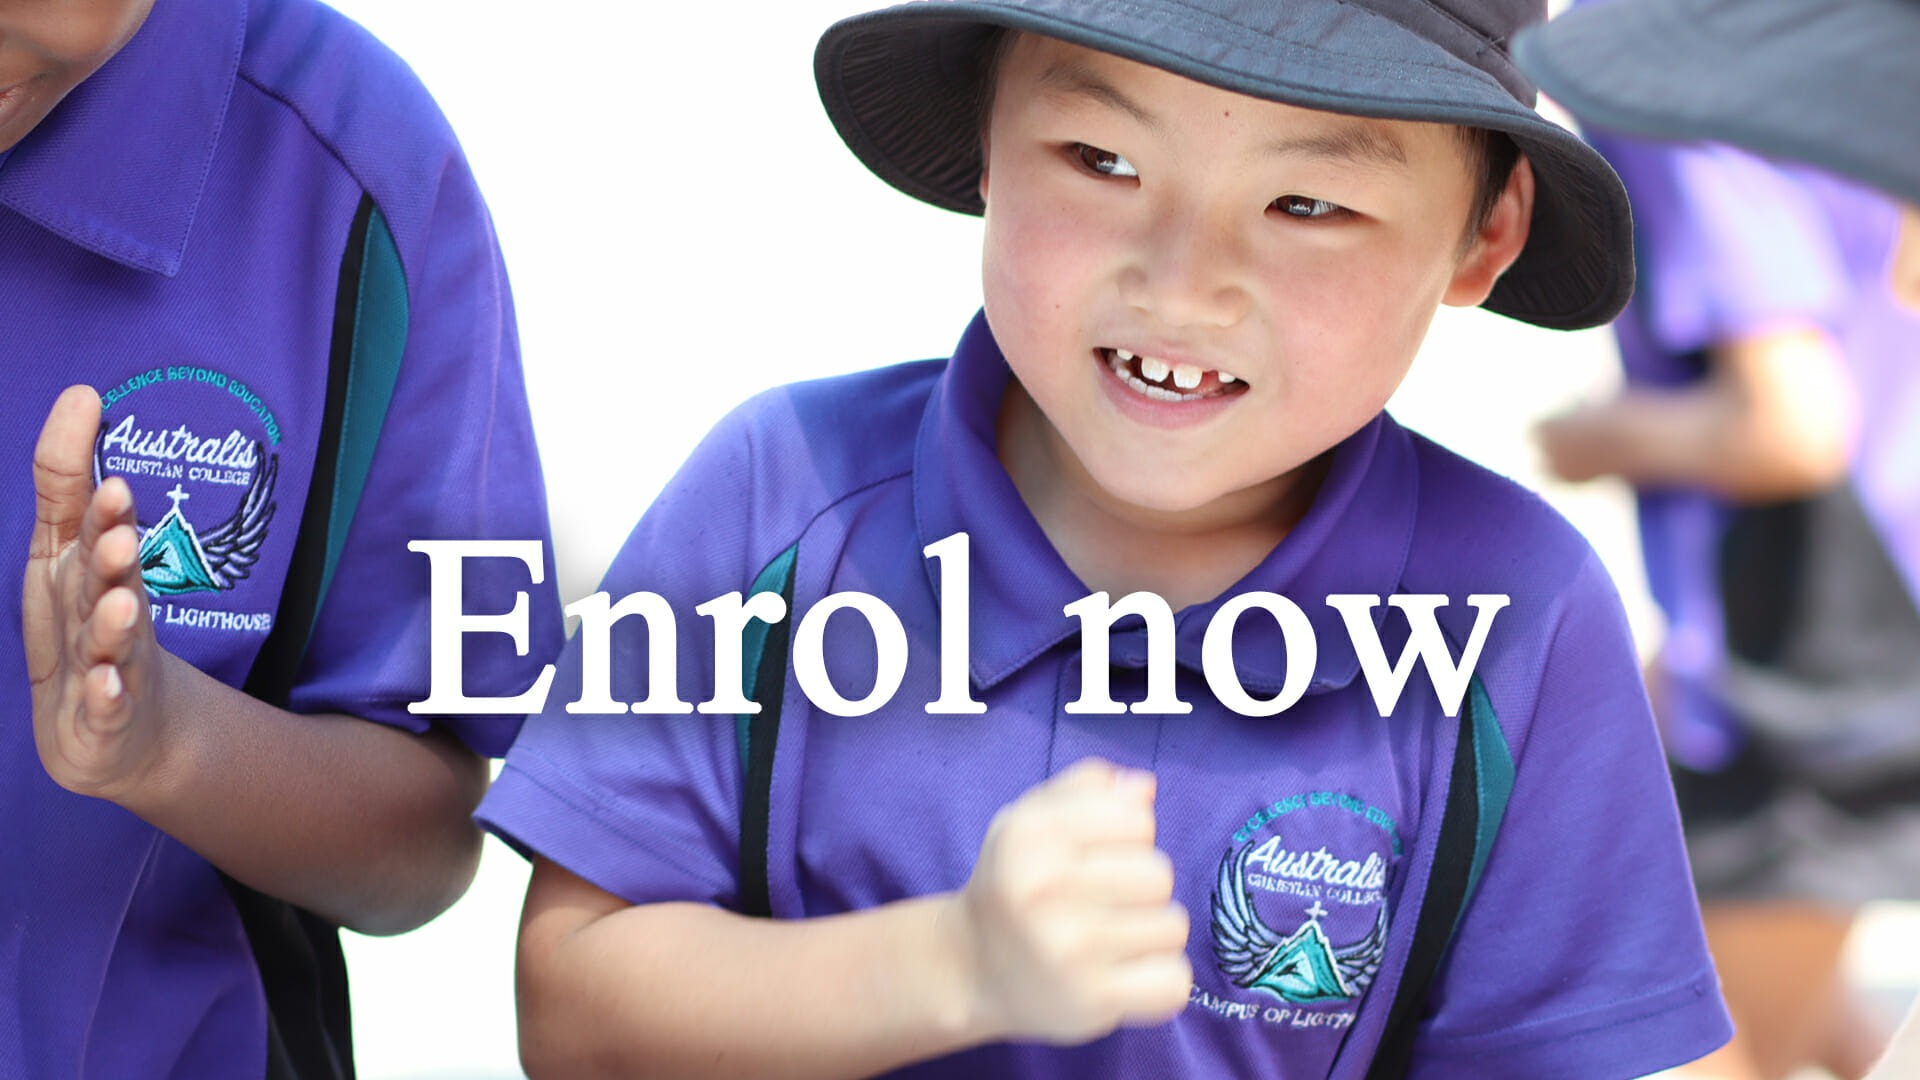 Australis Christian College Enrol Now